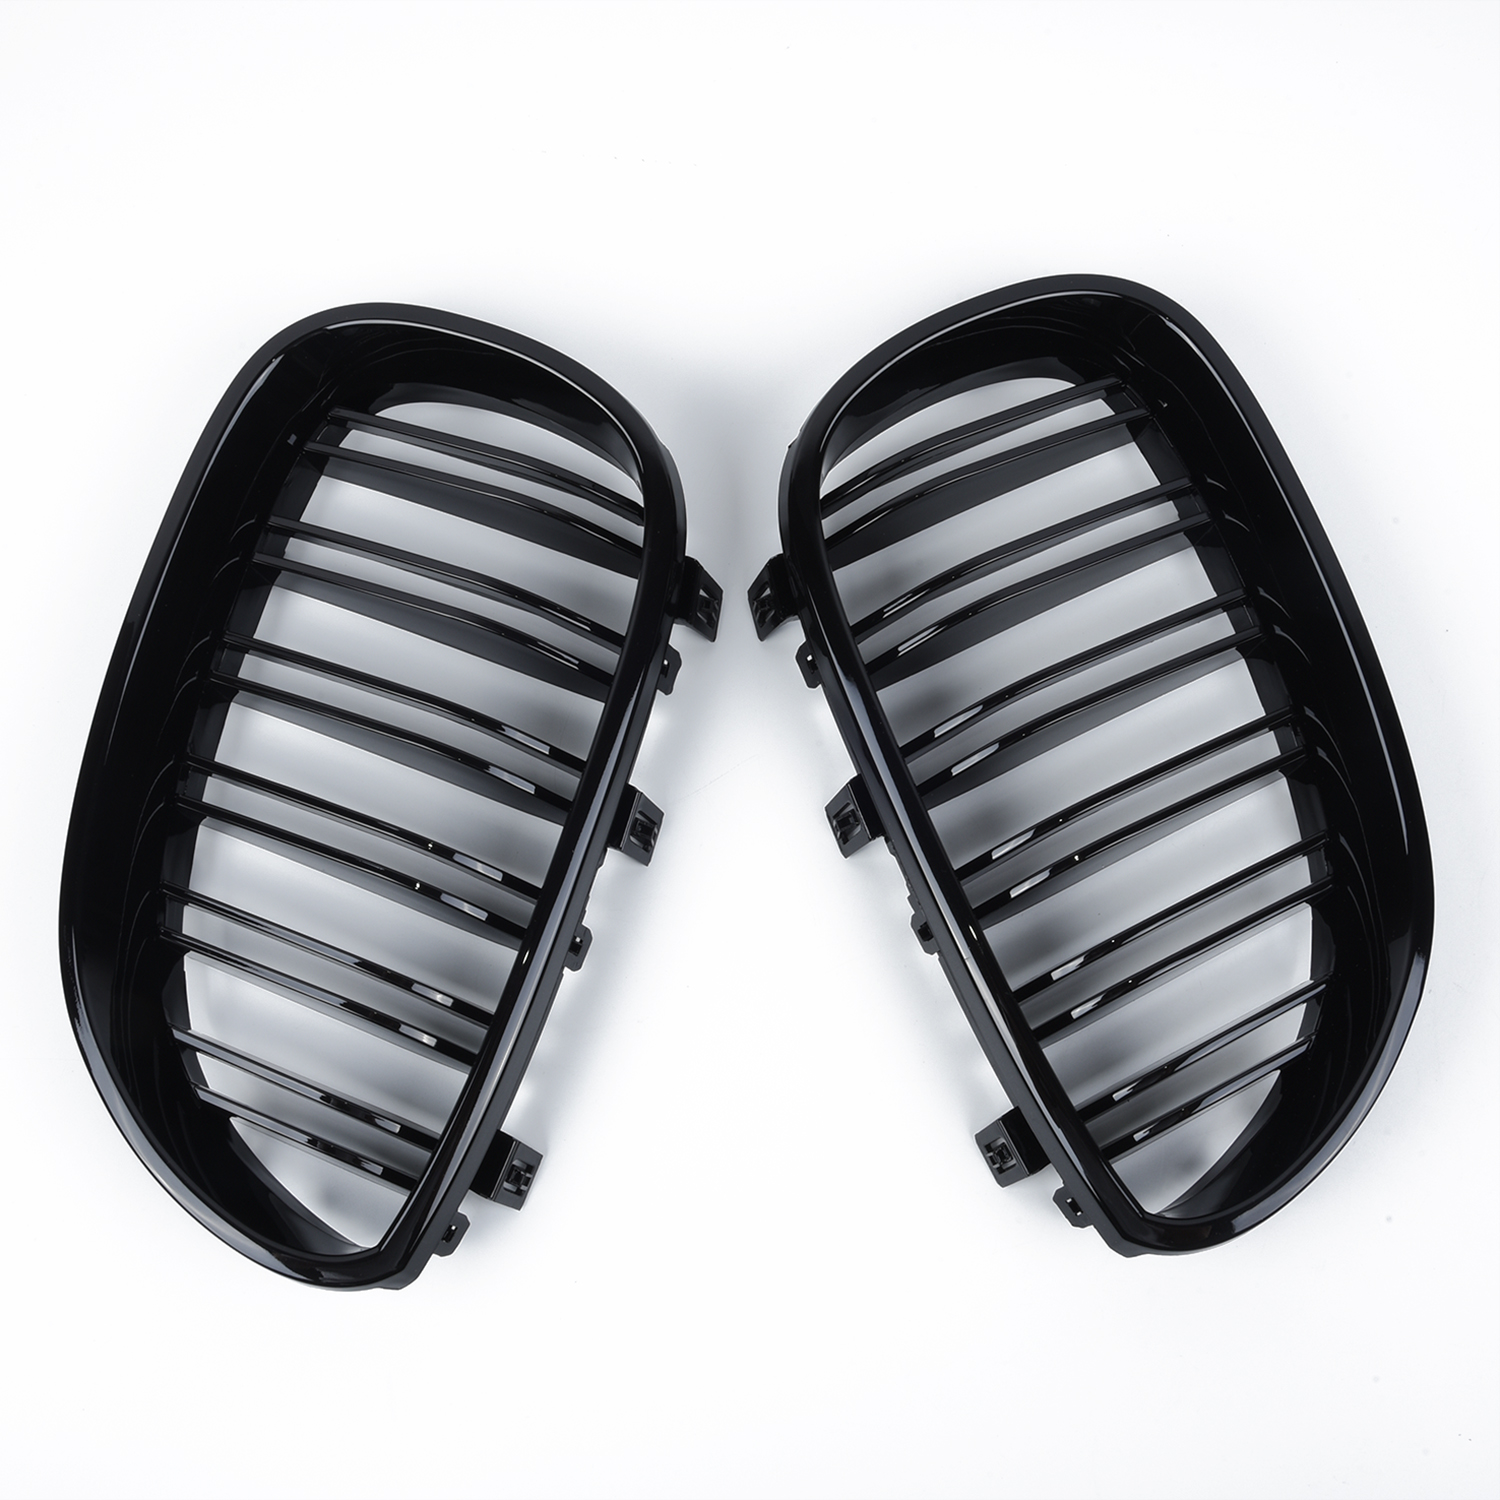 2pcs car Front Kidney Grill Double Slat Double Line Grille for <font><b>BMW</b></font> <font><b>5</b></font> <font><b>Series</b></font> <font><b>E60</b></font> E61 2003-2009 Front Kidney Grille Gloss Black image